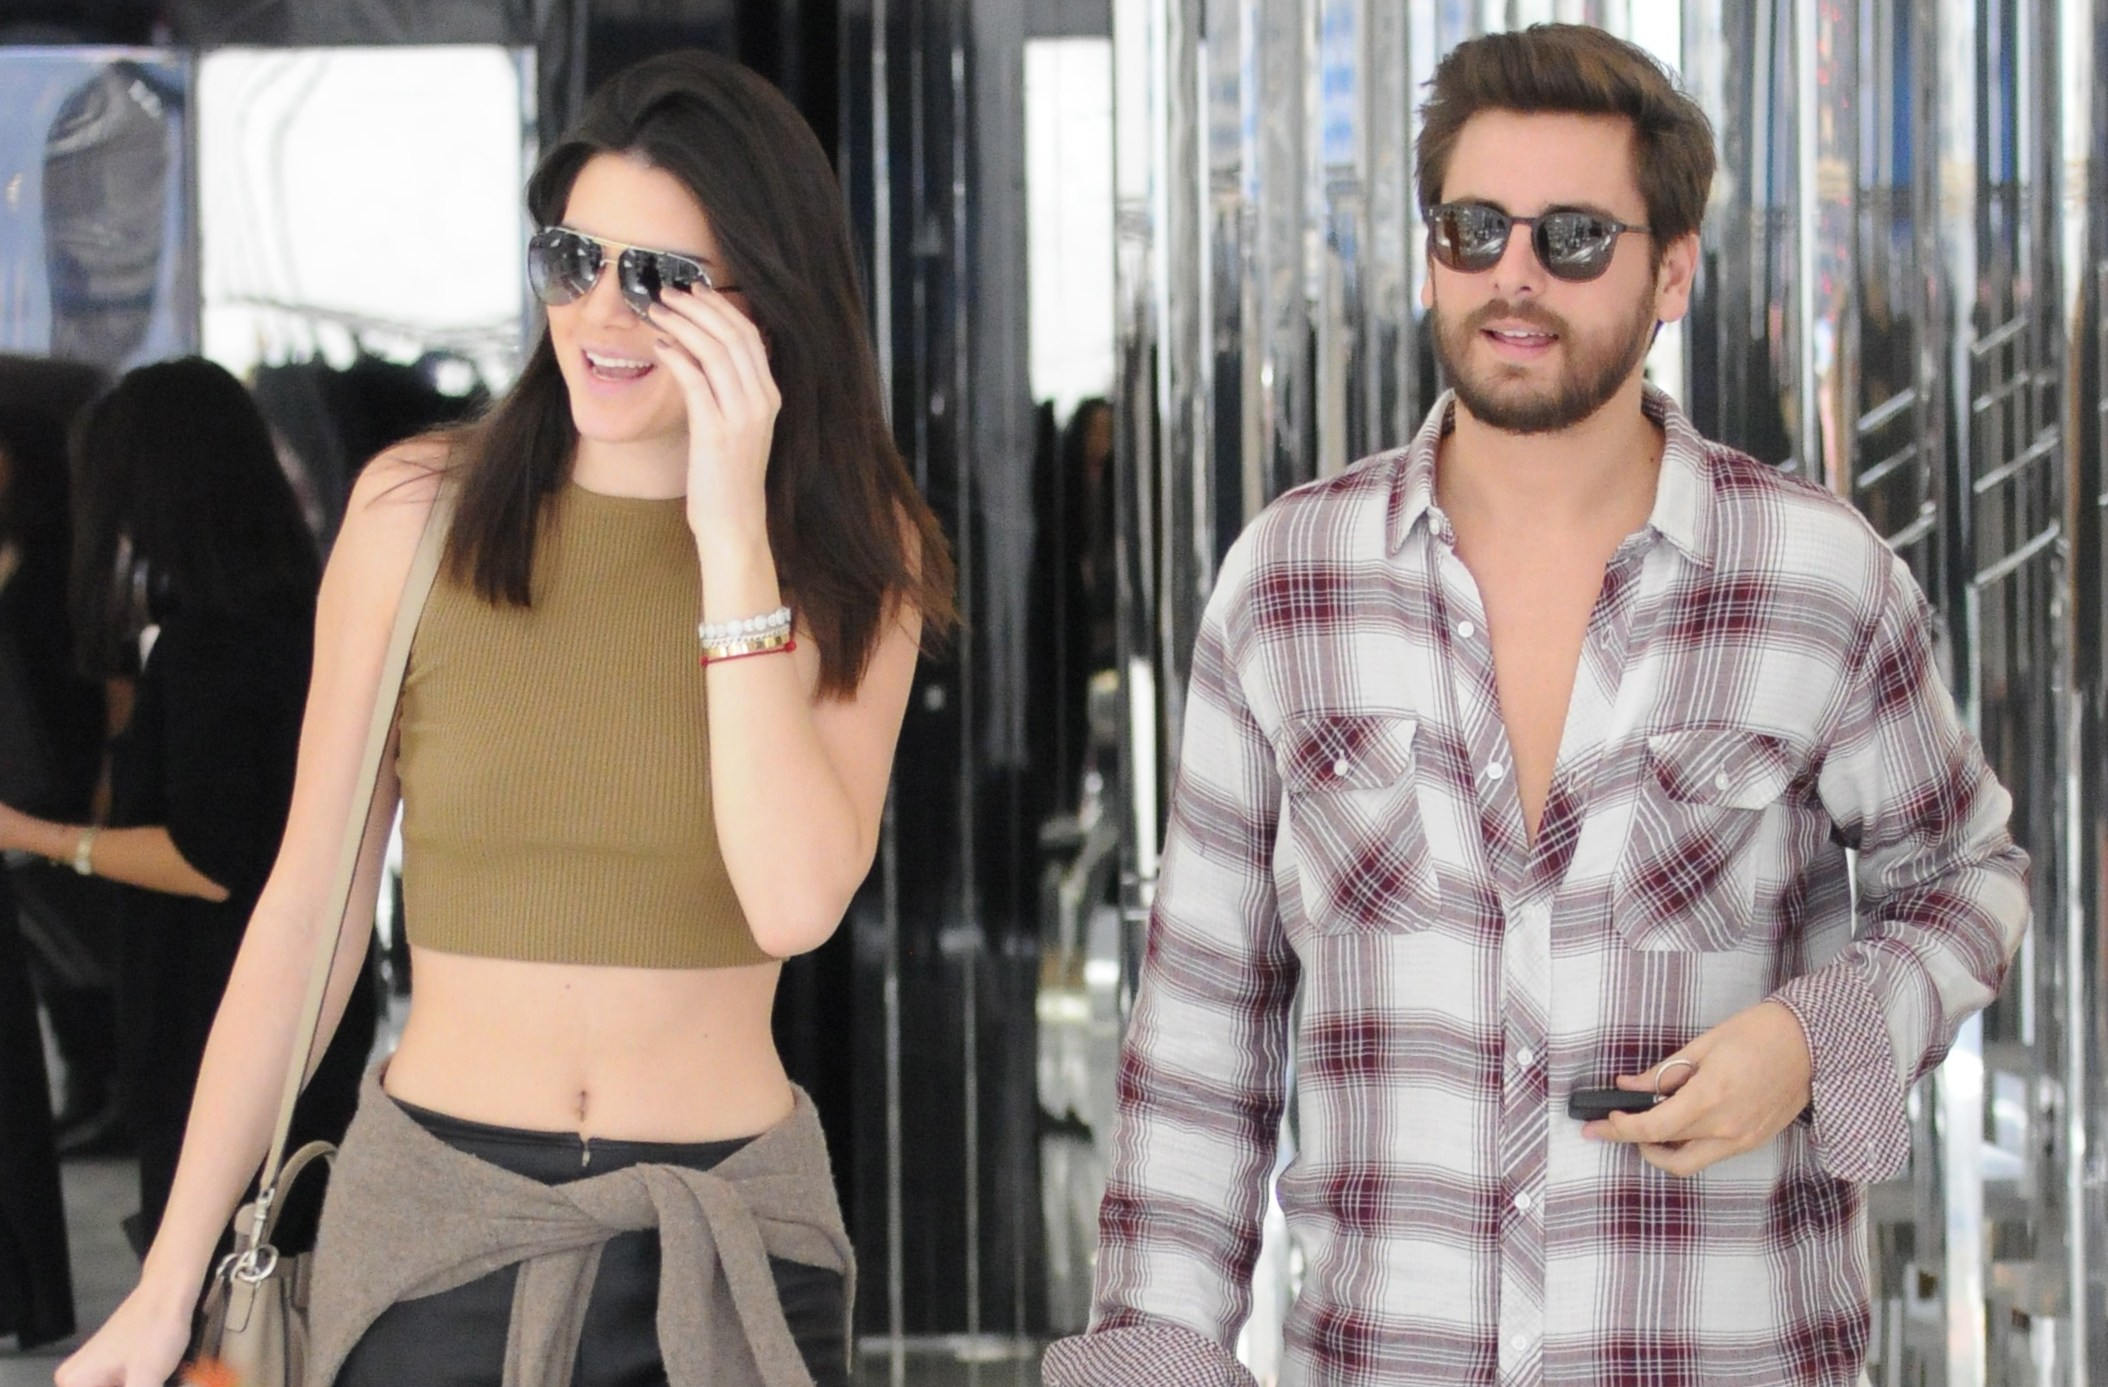 Scott Disick and Kendall Jenner Hookup